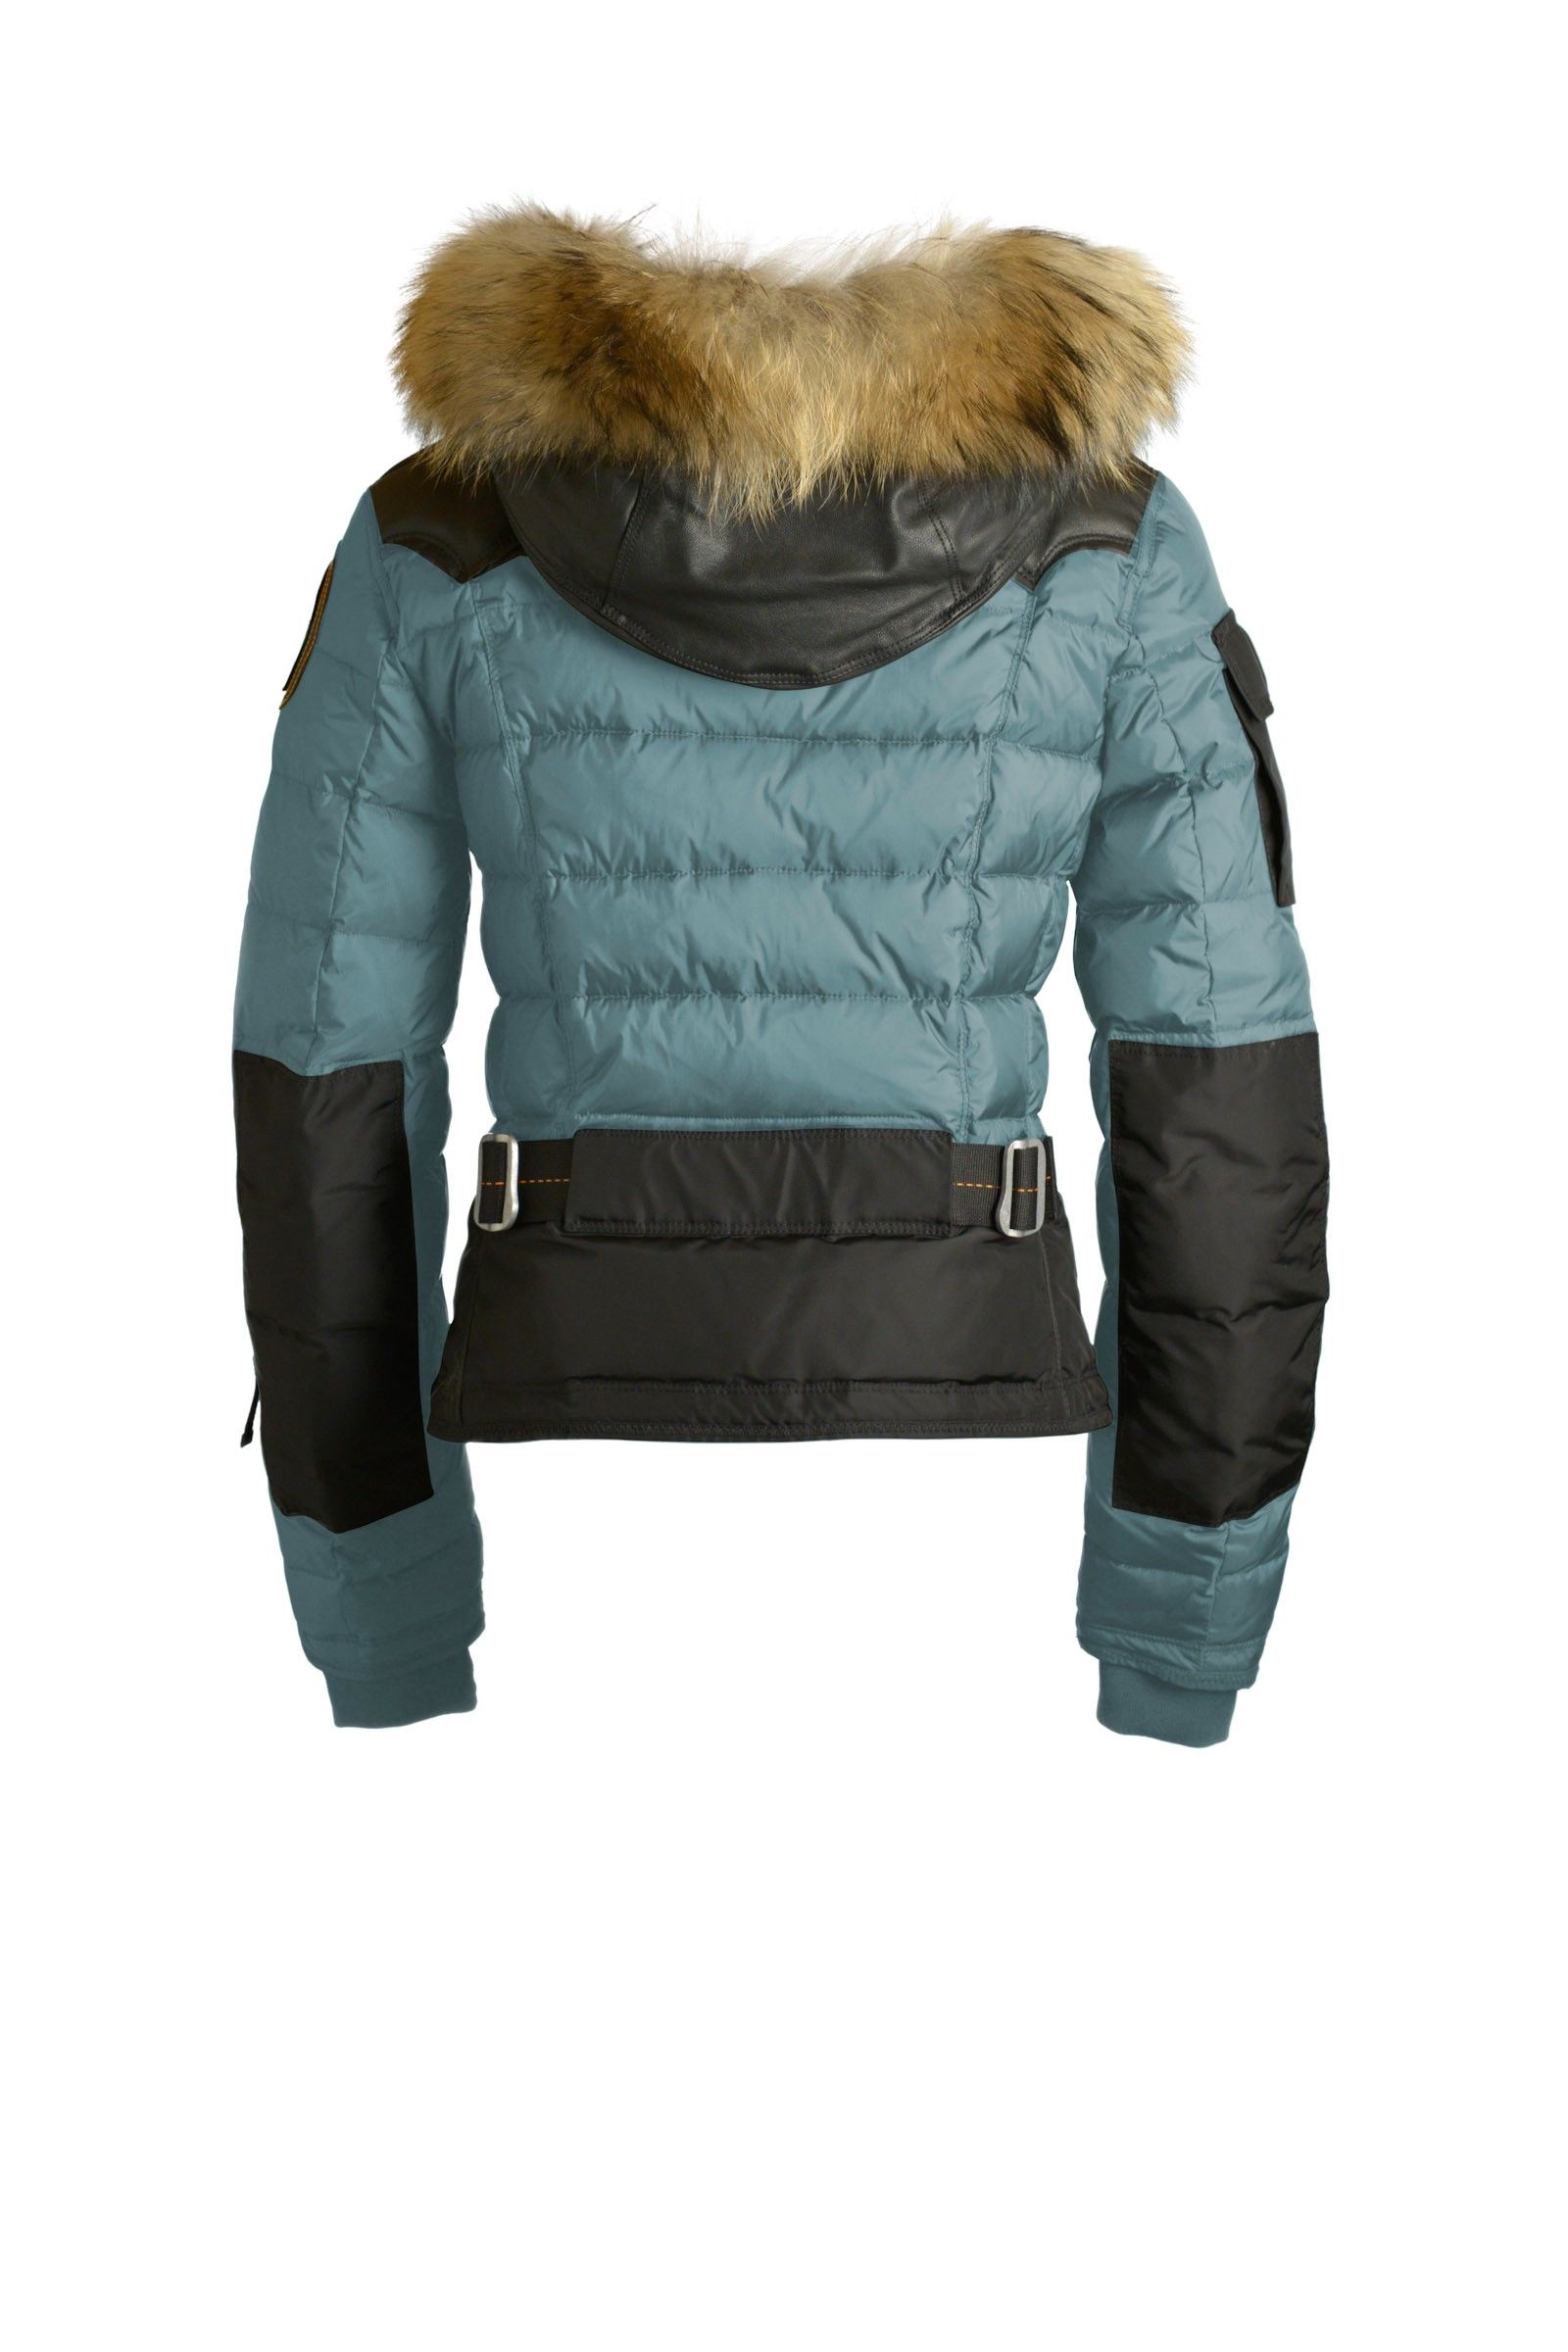 THIRD SKIMASTER - WOMAN - Outerwear - WOMAN | Parajumpers